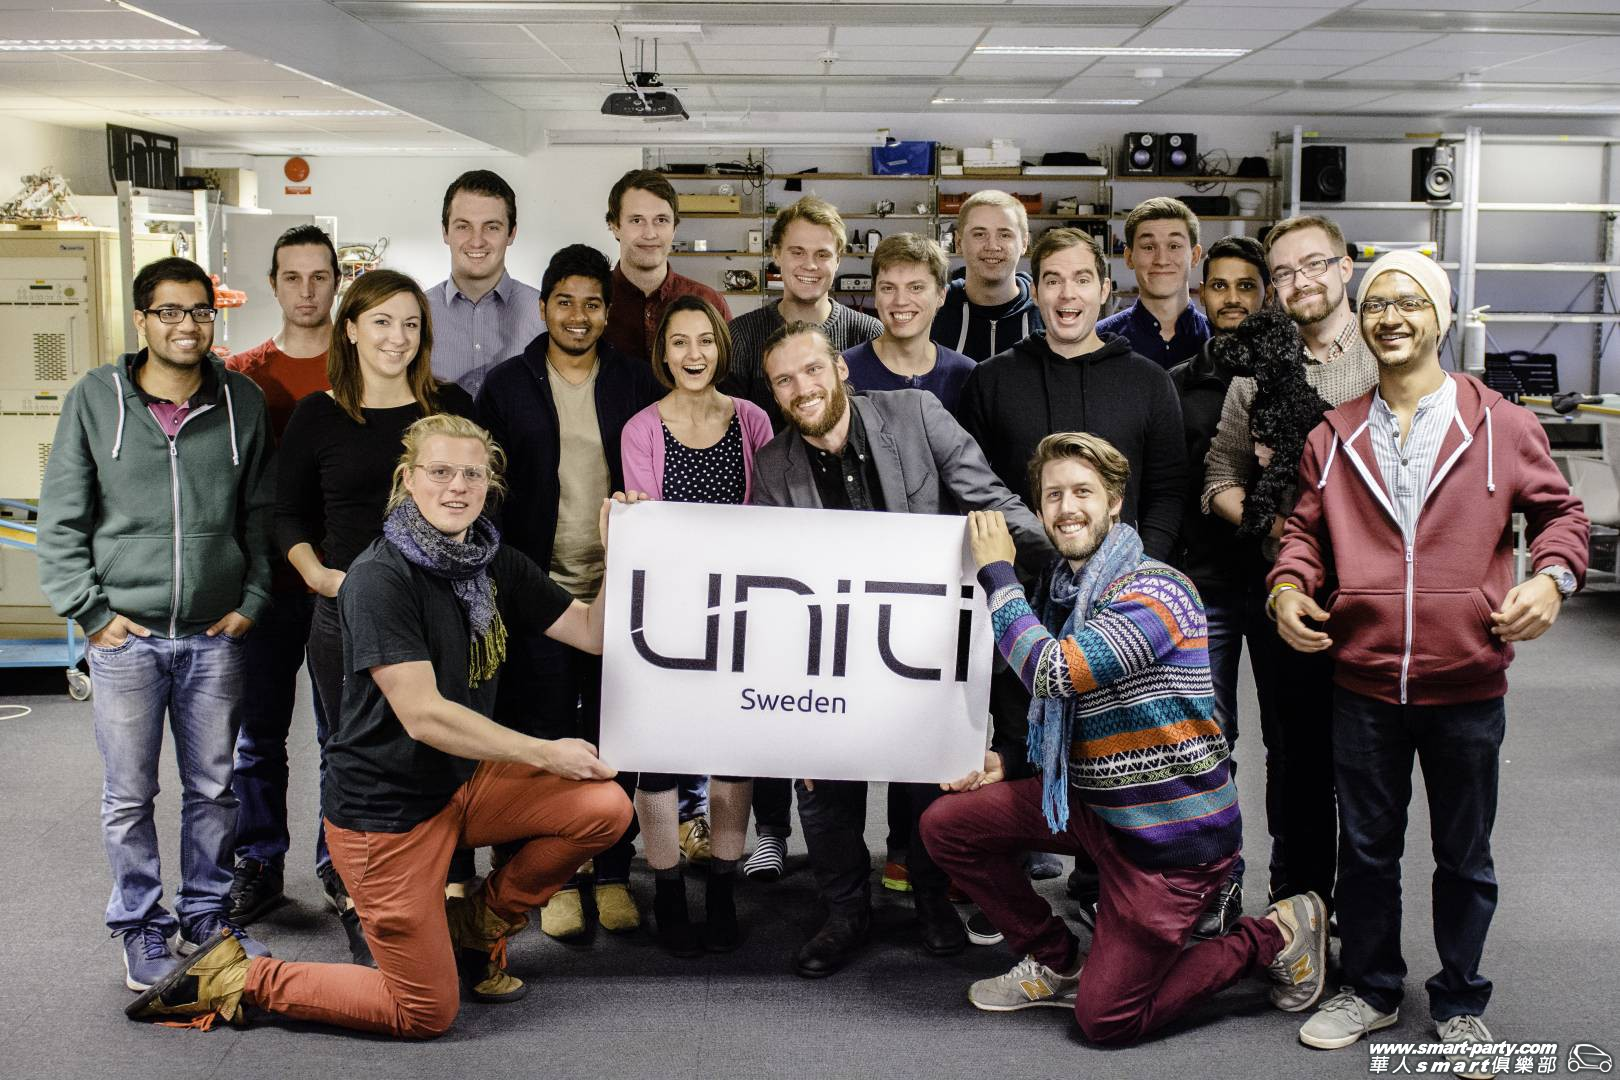 Uniti-Team-in-workshop-teamuniti.jpg